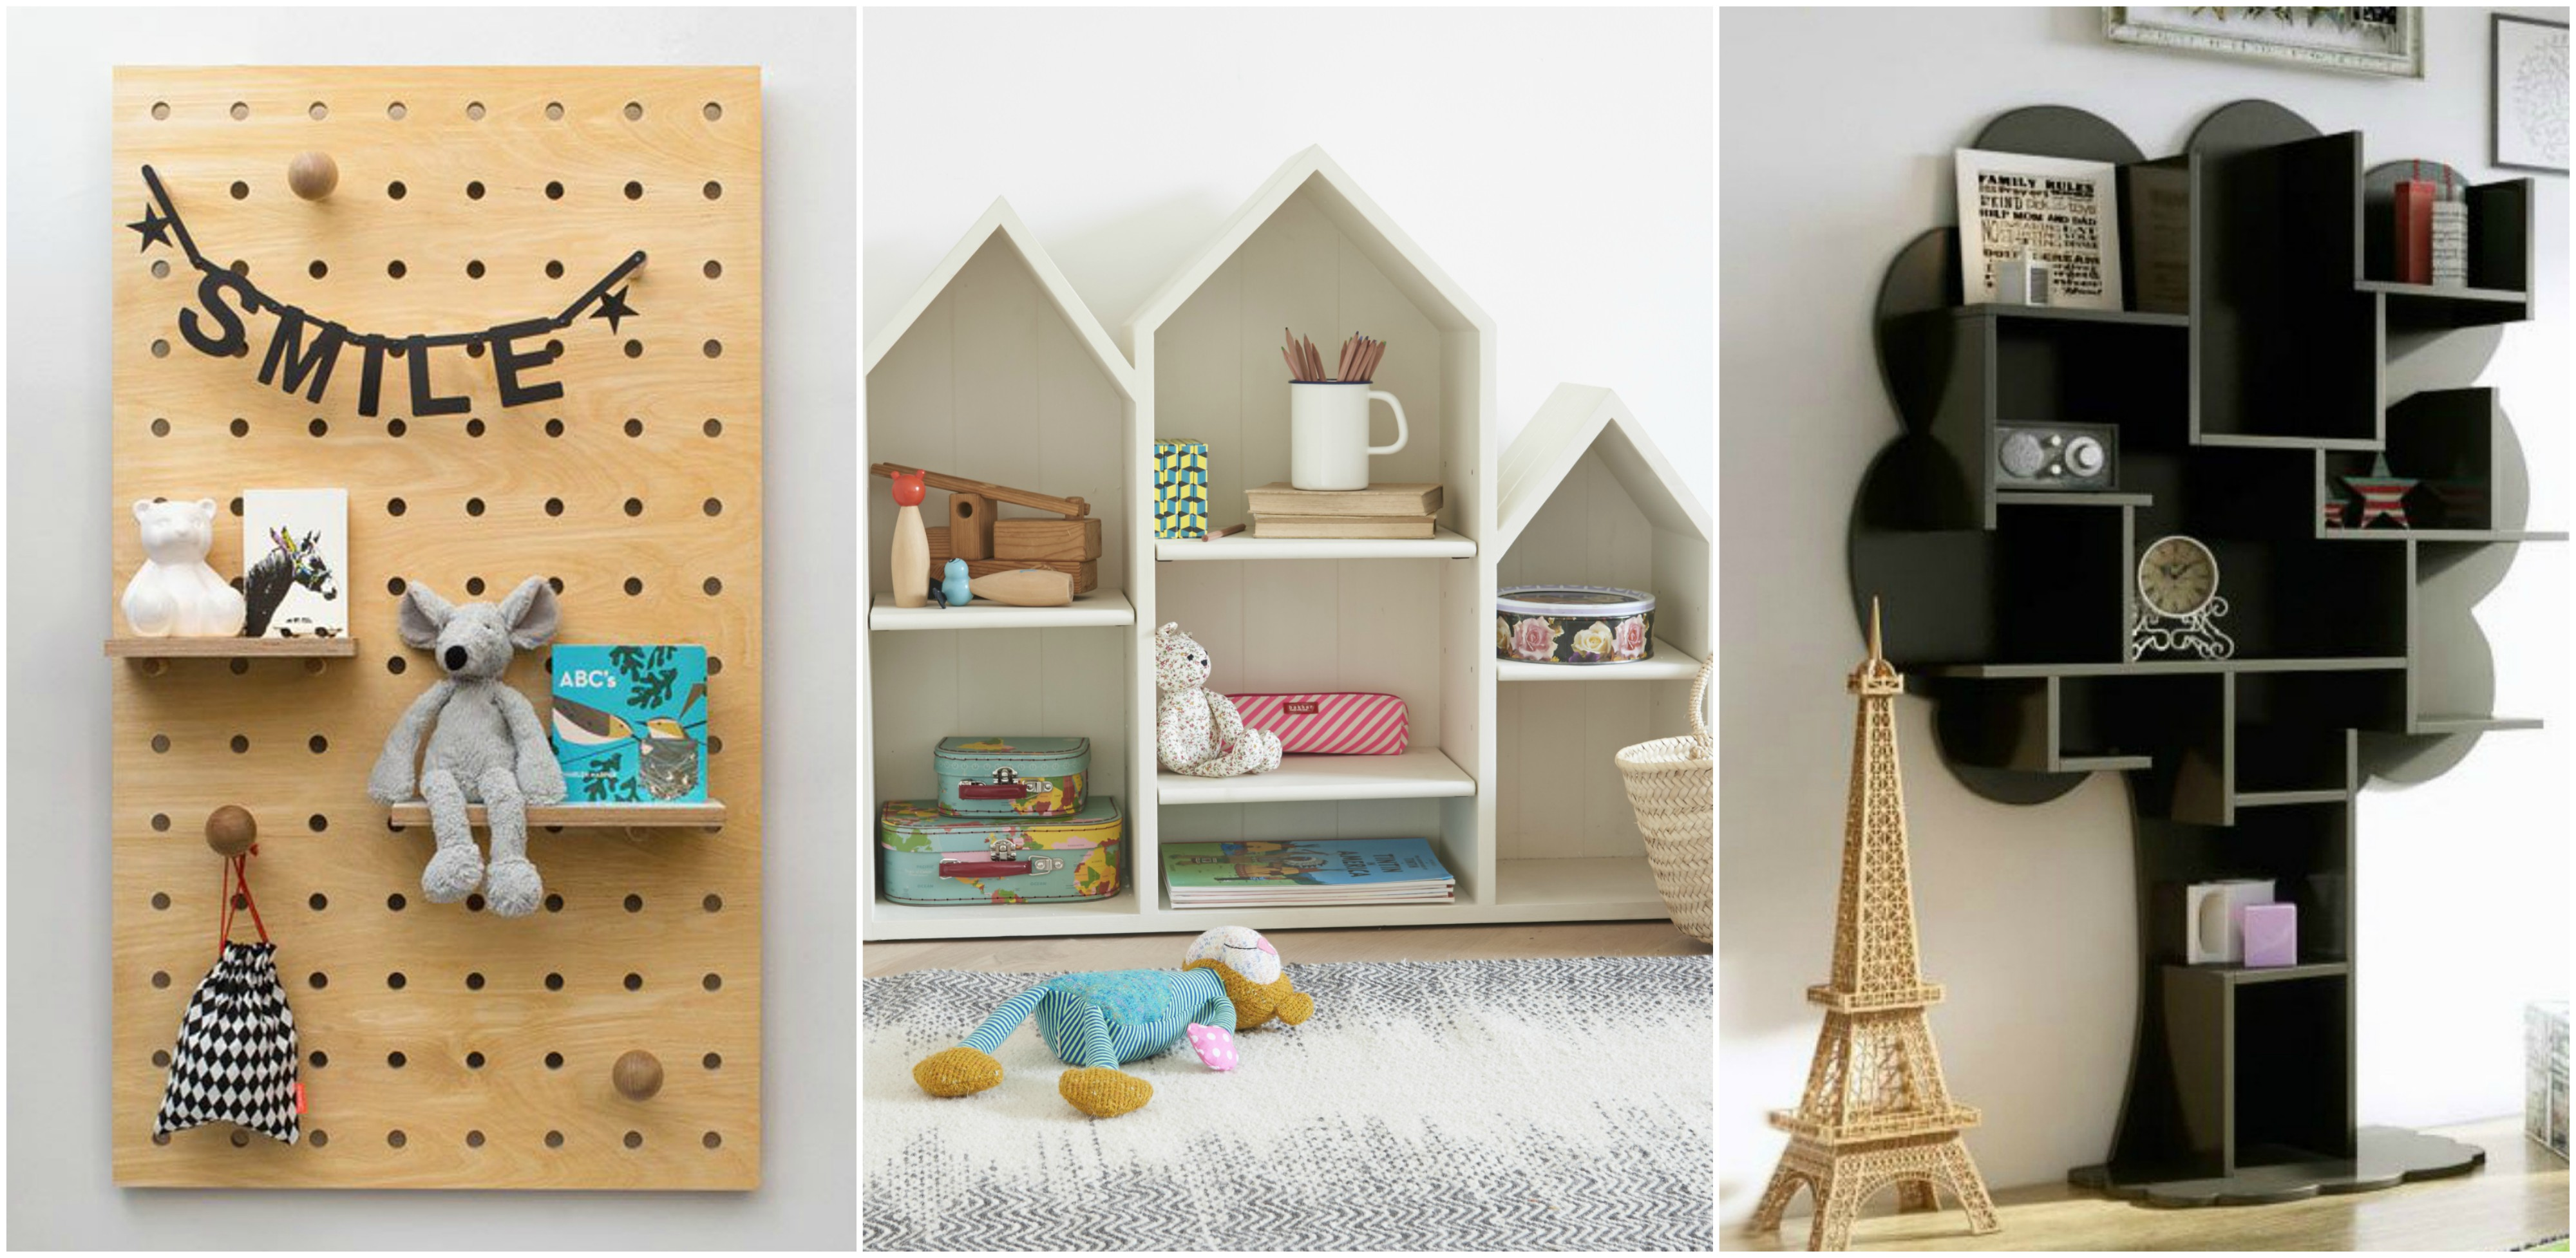 Children S And Kids Room Ideas Designs Inspiration: 10 Children's Room Storage Ideas